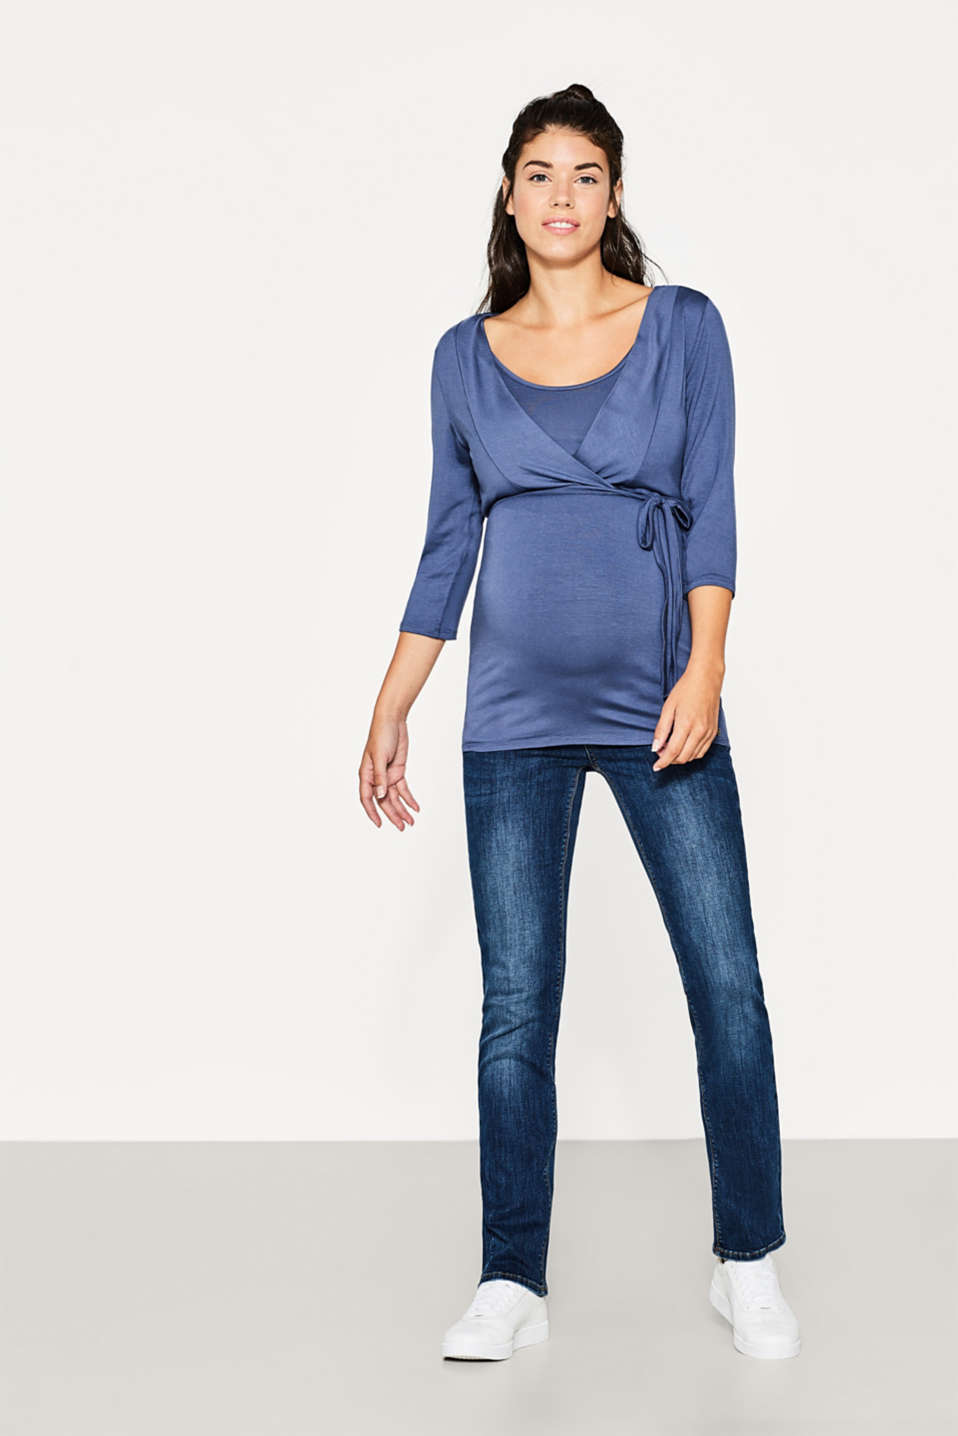 Stretchy top for nursing